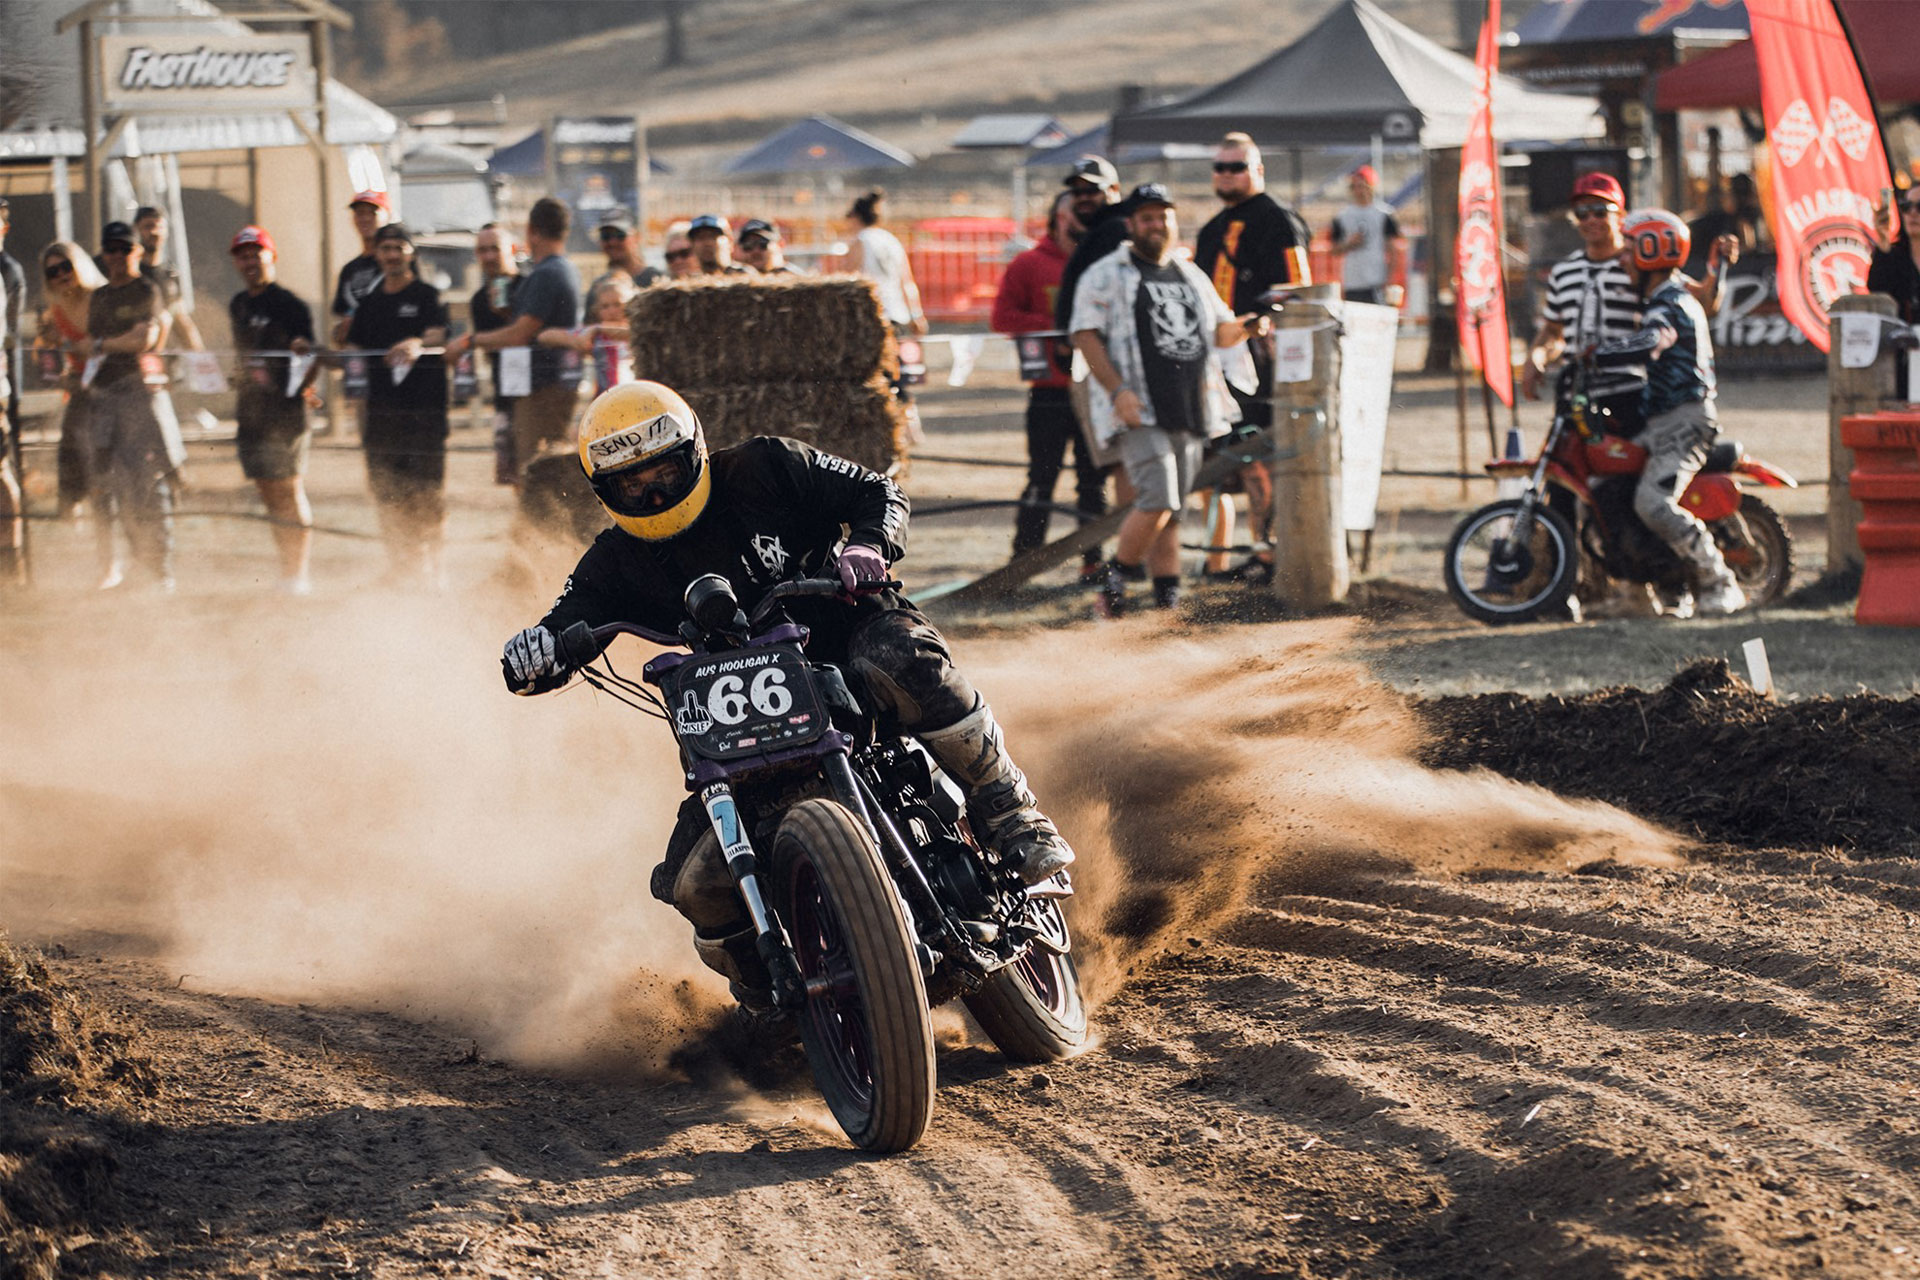 Moto Expo 2018 returns to Melbourne with plenty of stunting and dirt action for visitors